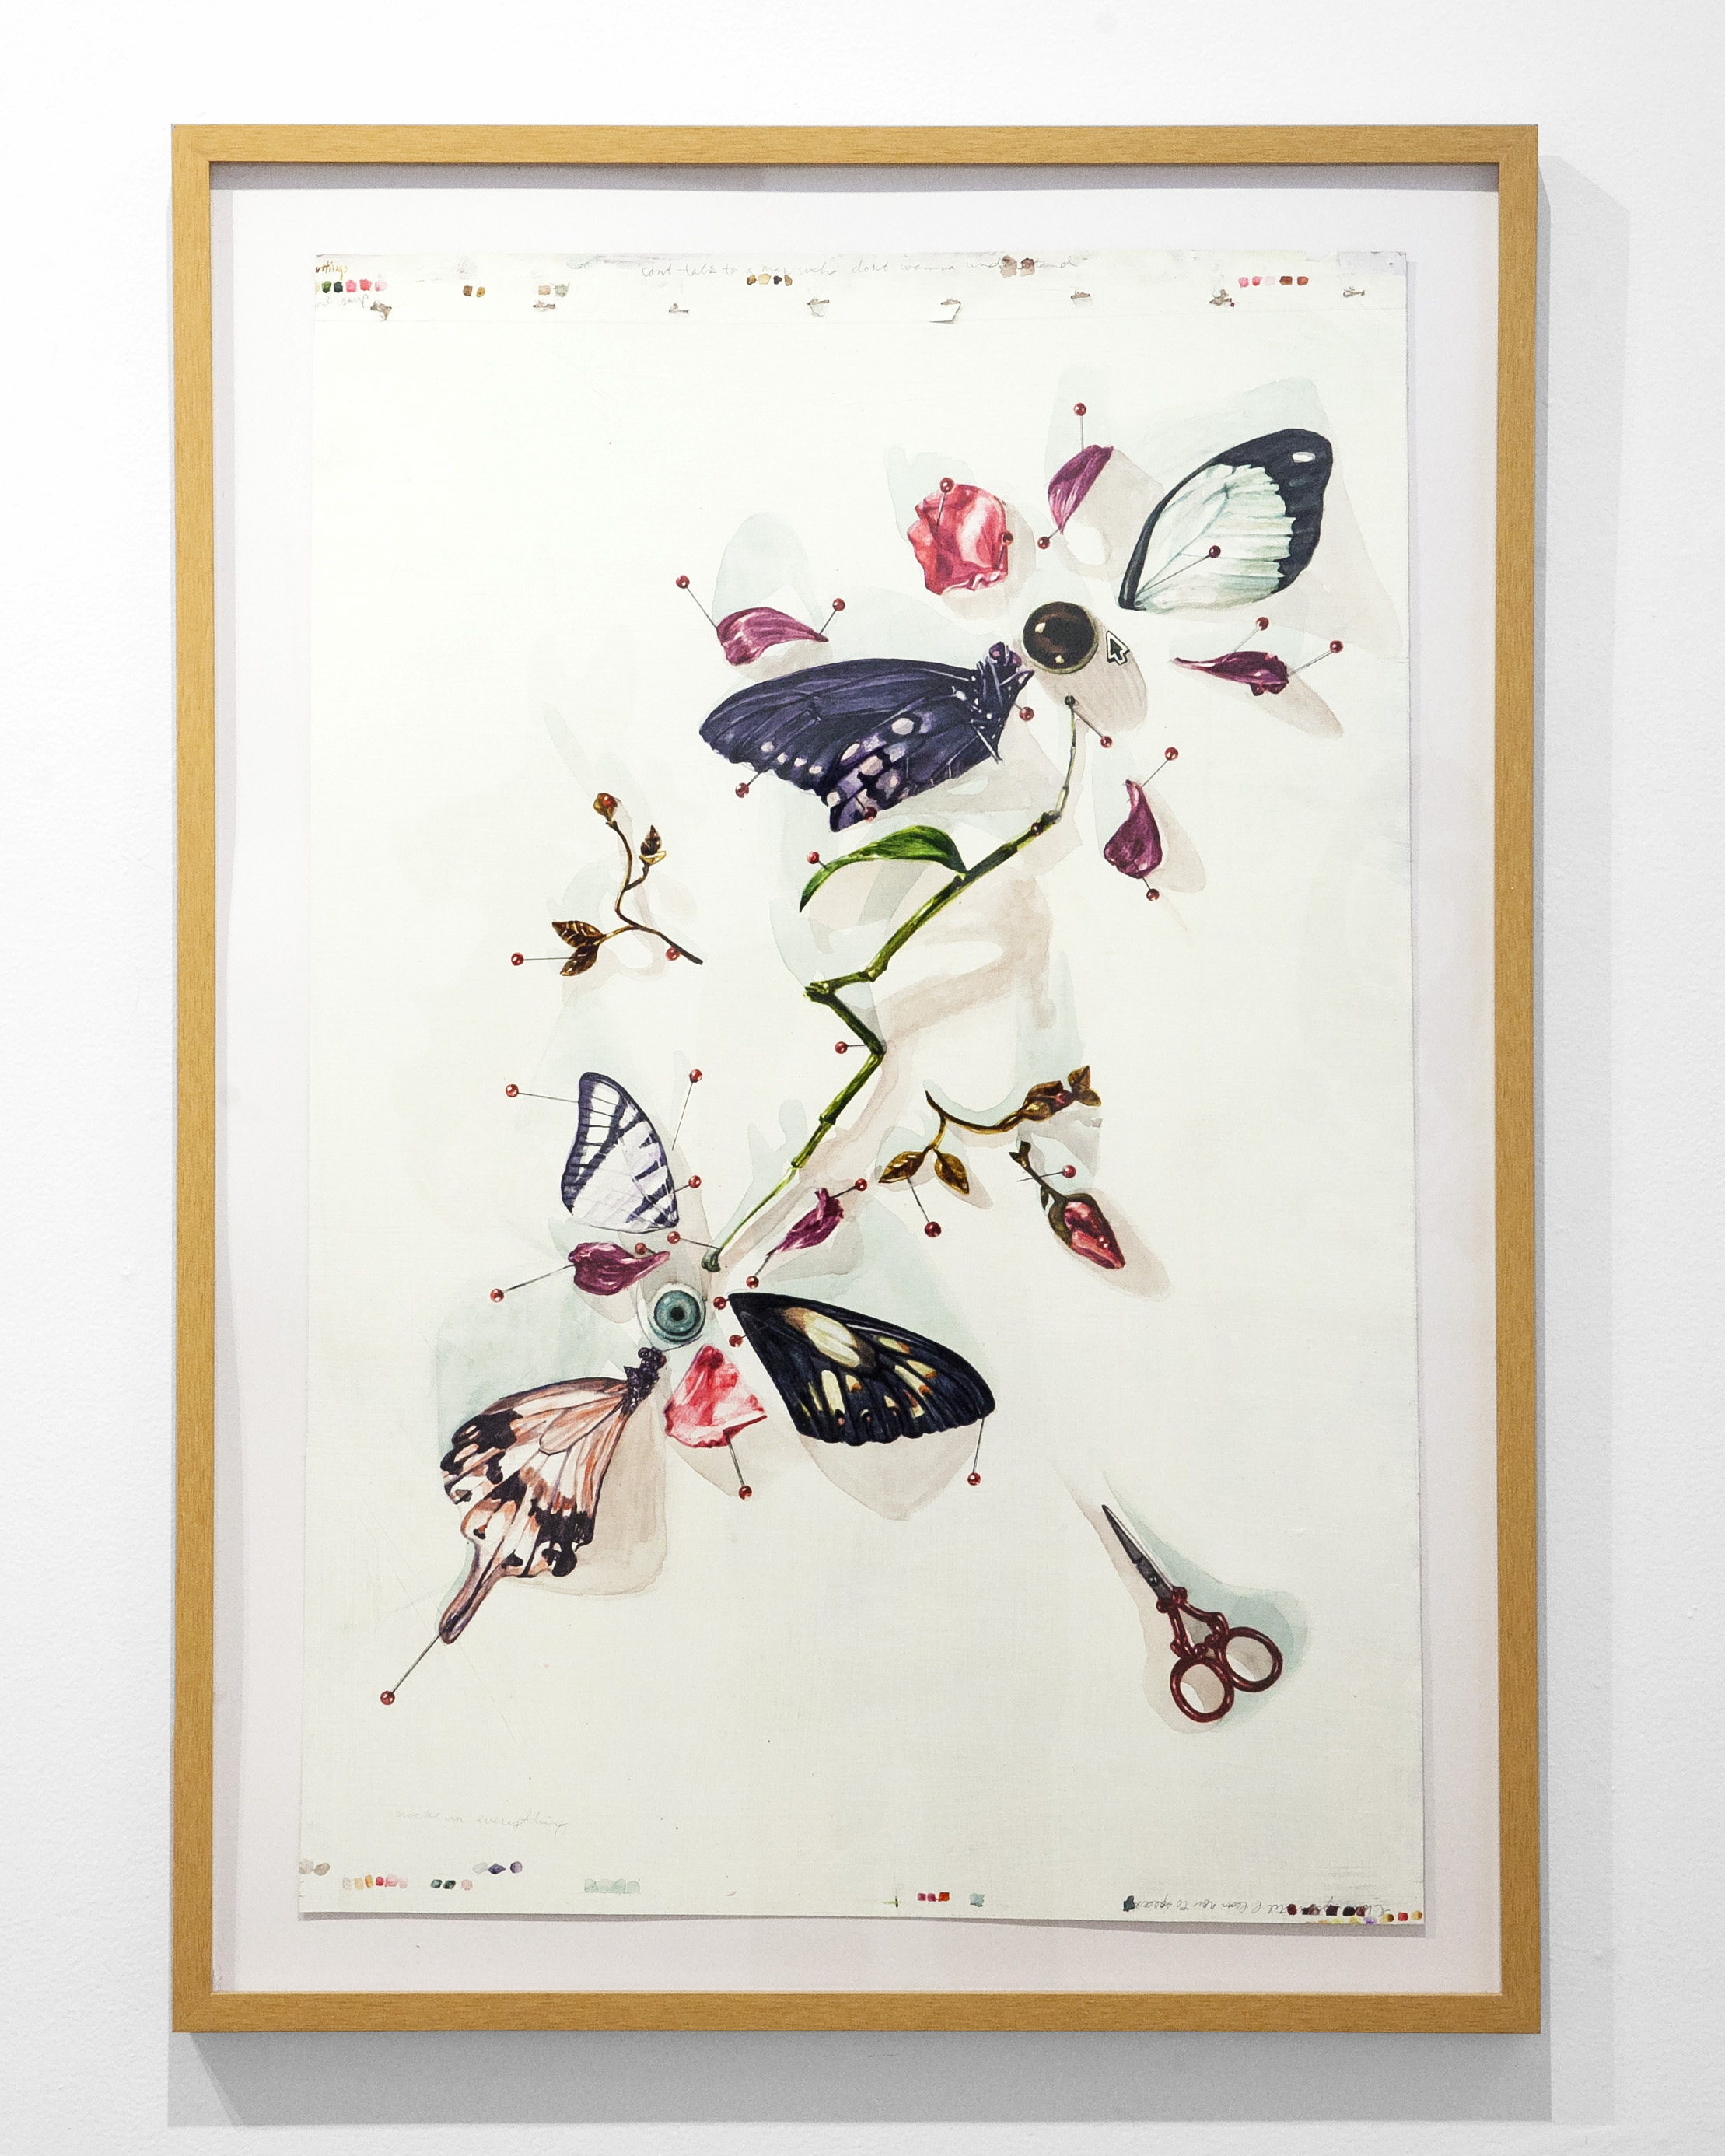 """Aubrey Learner -  """"Cuttings""""  Ink / Acrylic on Paper.   32 x 22 Inches. Framed. 2019."""